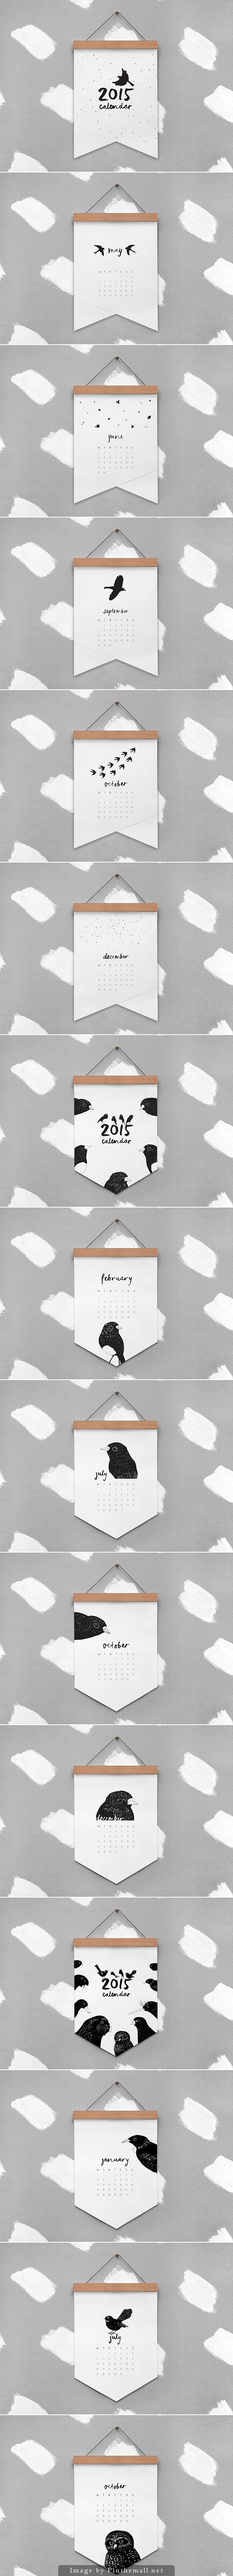 2015 #calendar by melissa boardman with cute bird illustrations